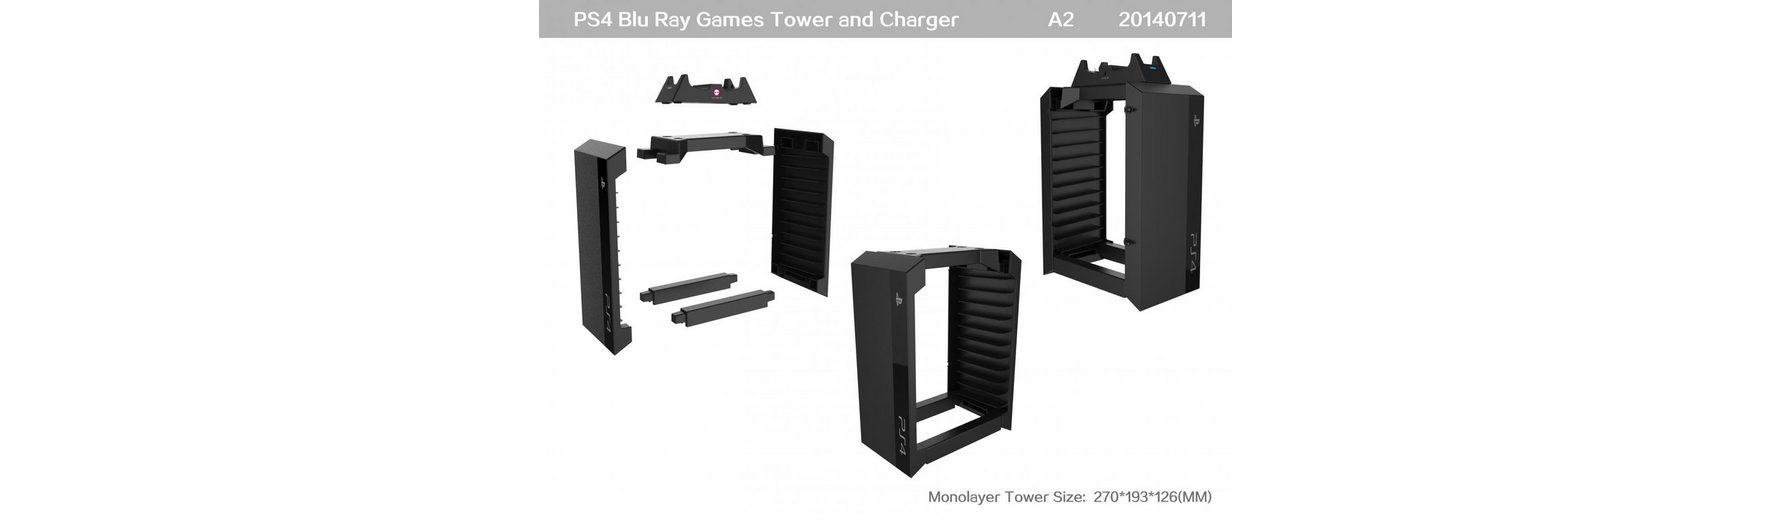 Snakebyte Games Tower + Charger »(PS4)«